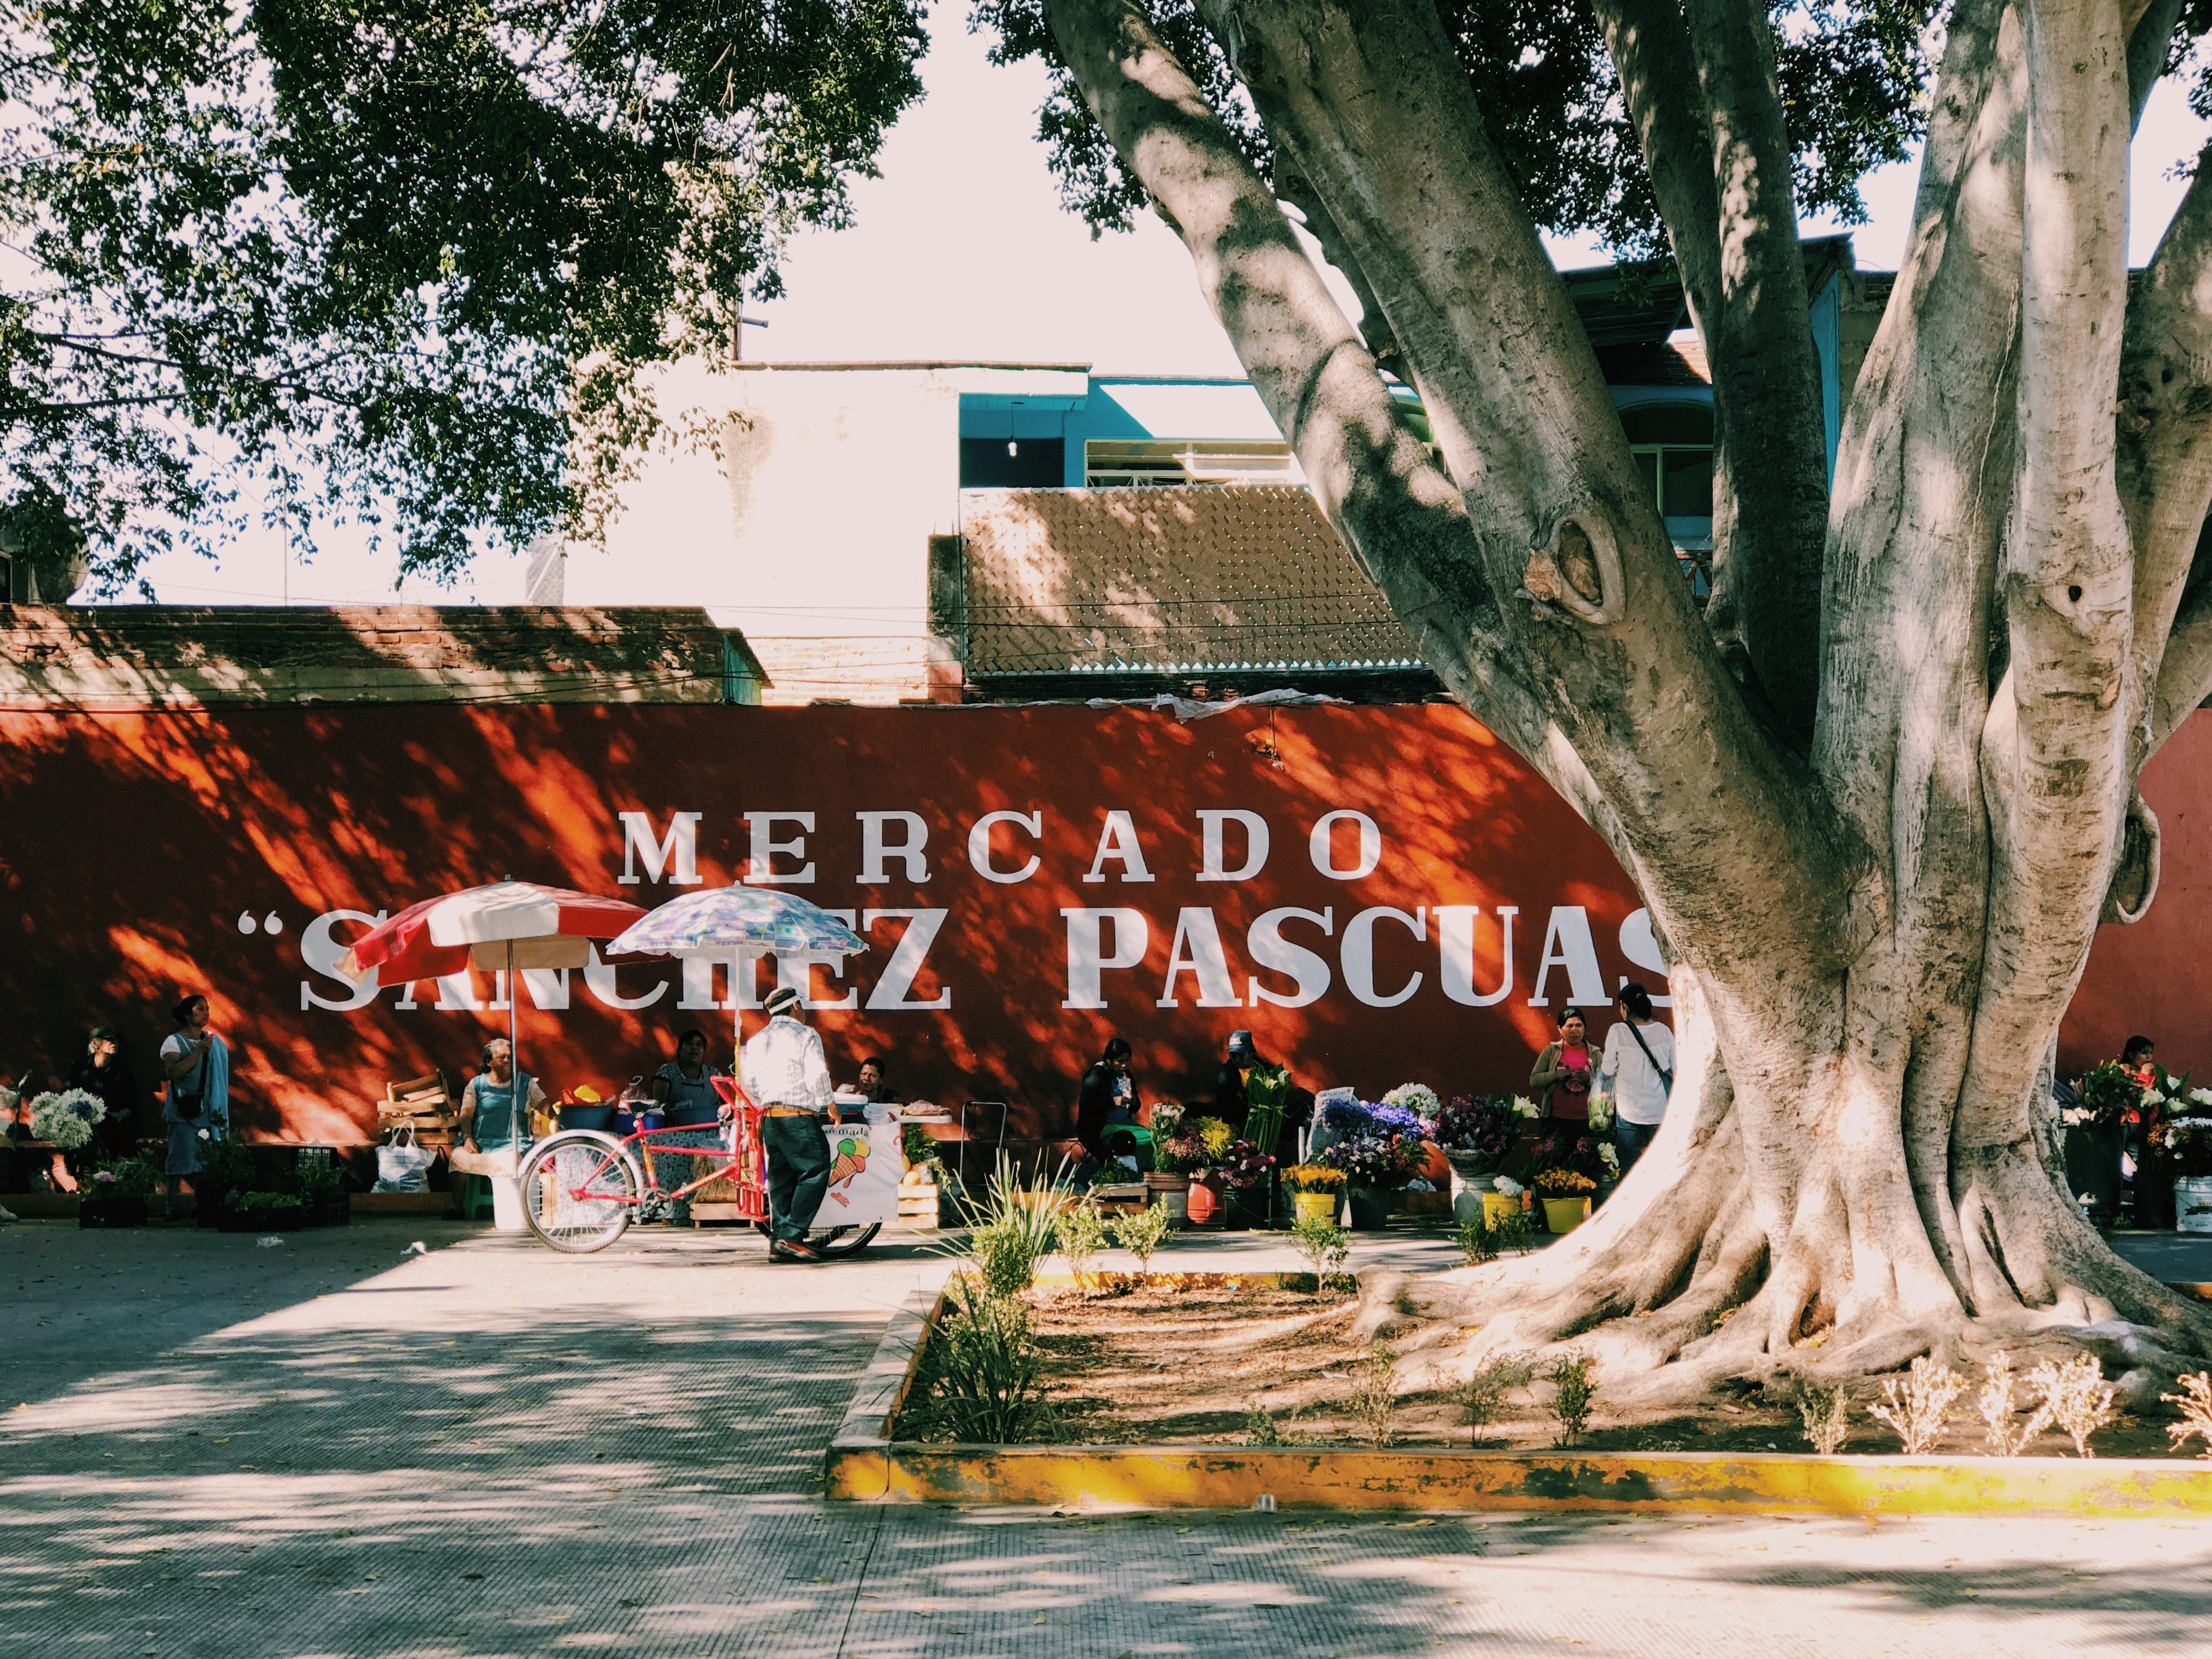 Mercado Sanchez Pascuas Oaxaca